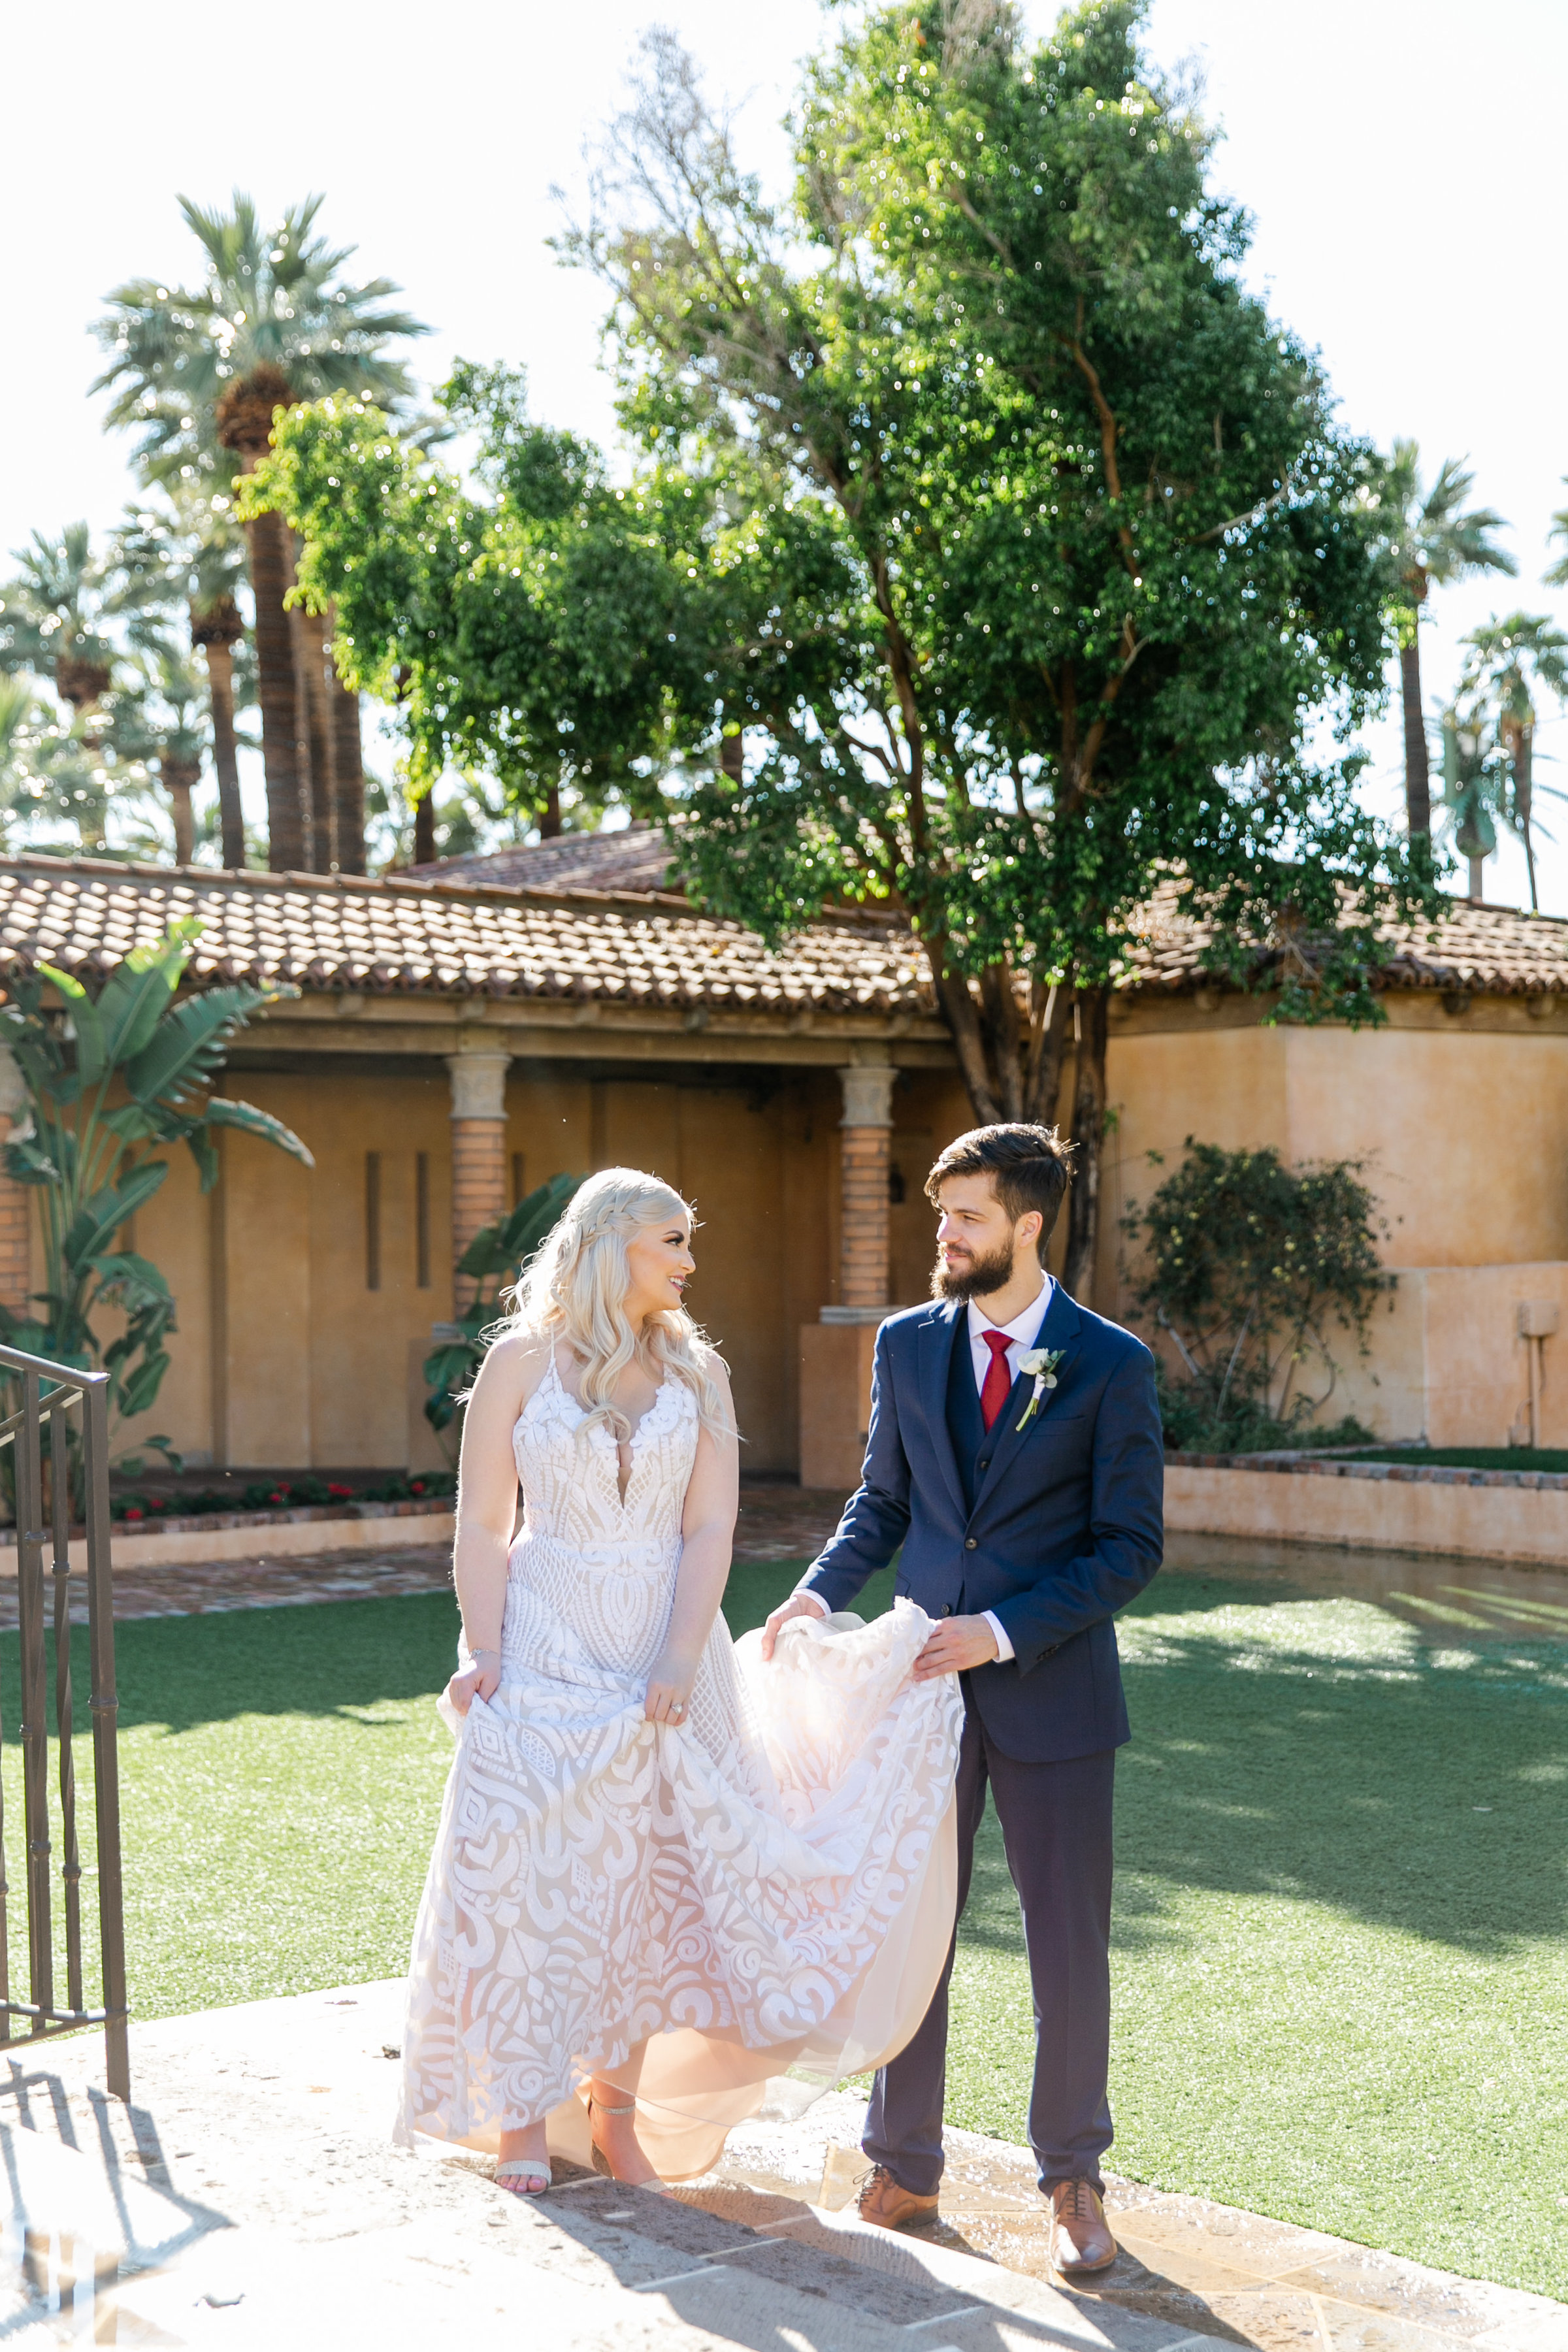 Karlie Colleen Photography - The Royal Palms Wedding - Some Like It Classic - Alex & Sam-171